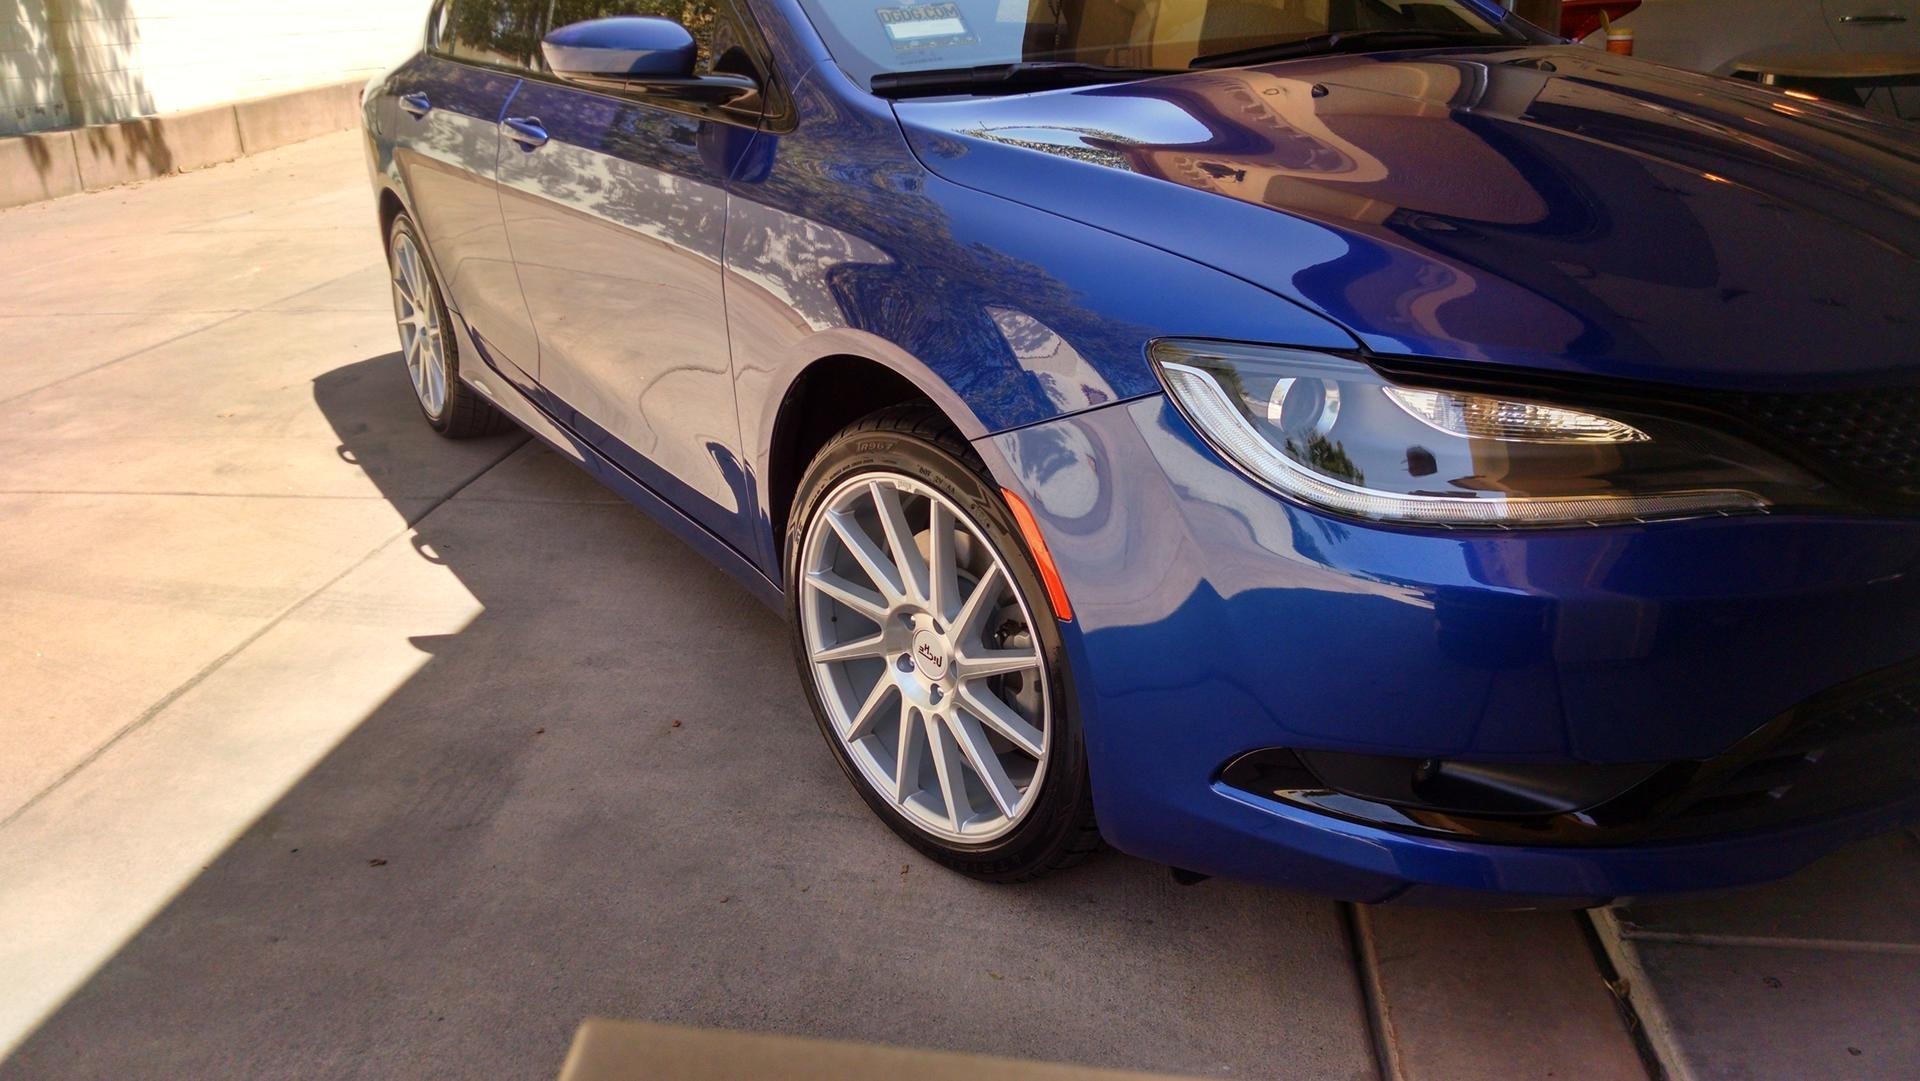 chrysler 200 mods wheels exterior aftermarket running body forum uf 200forums appearance hdr attachment